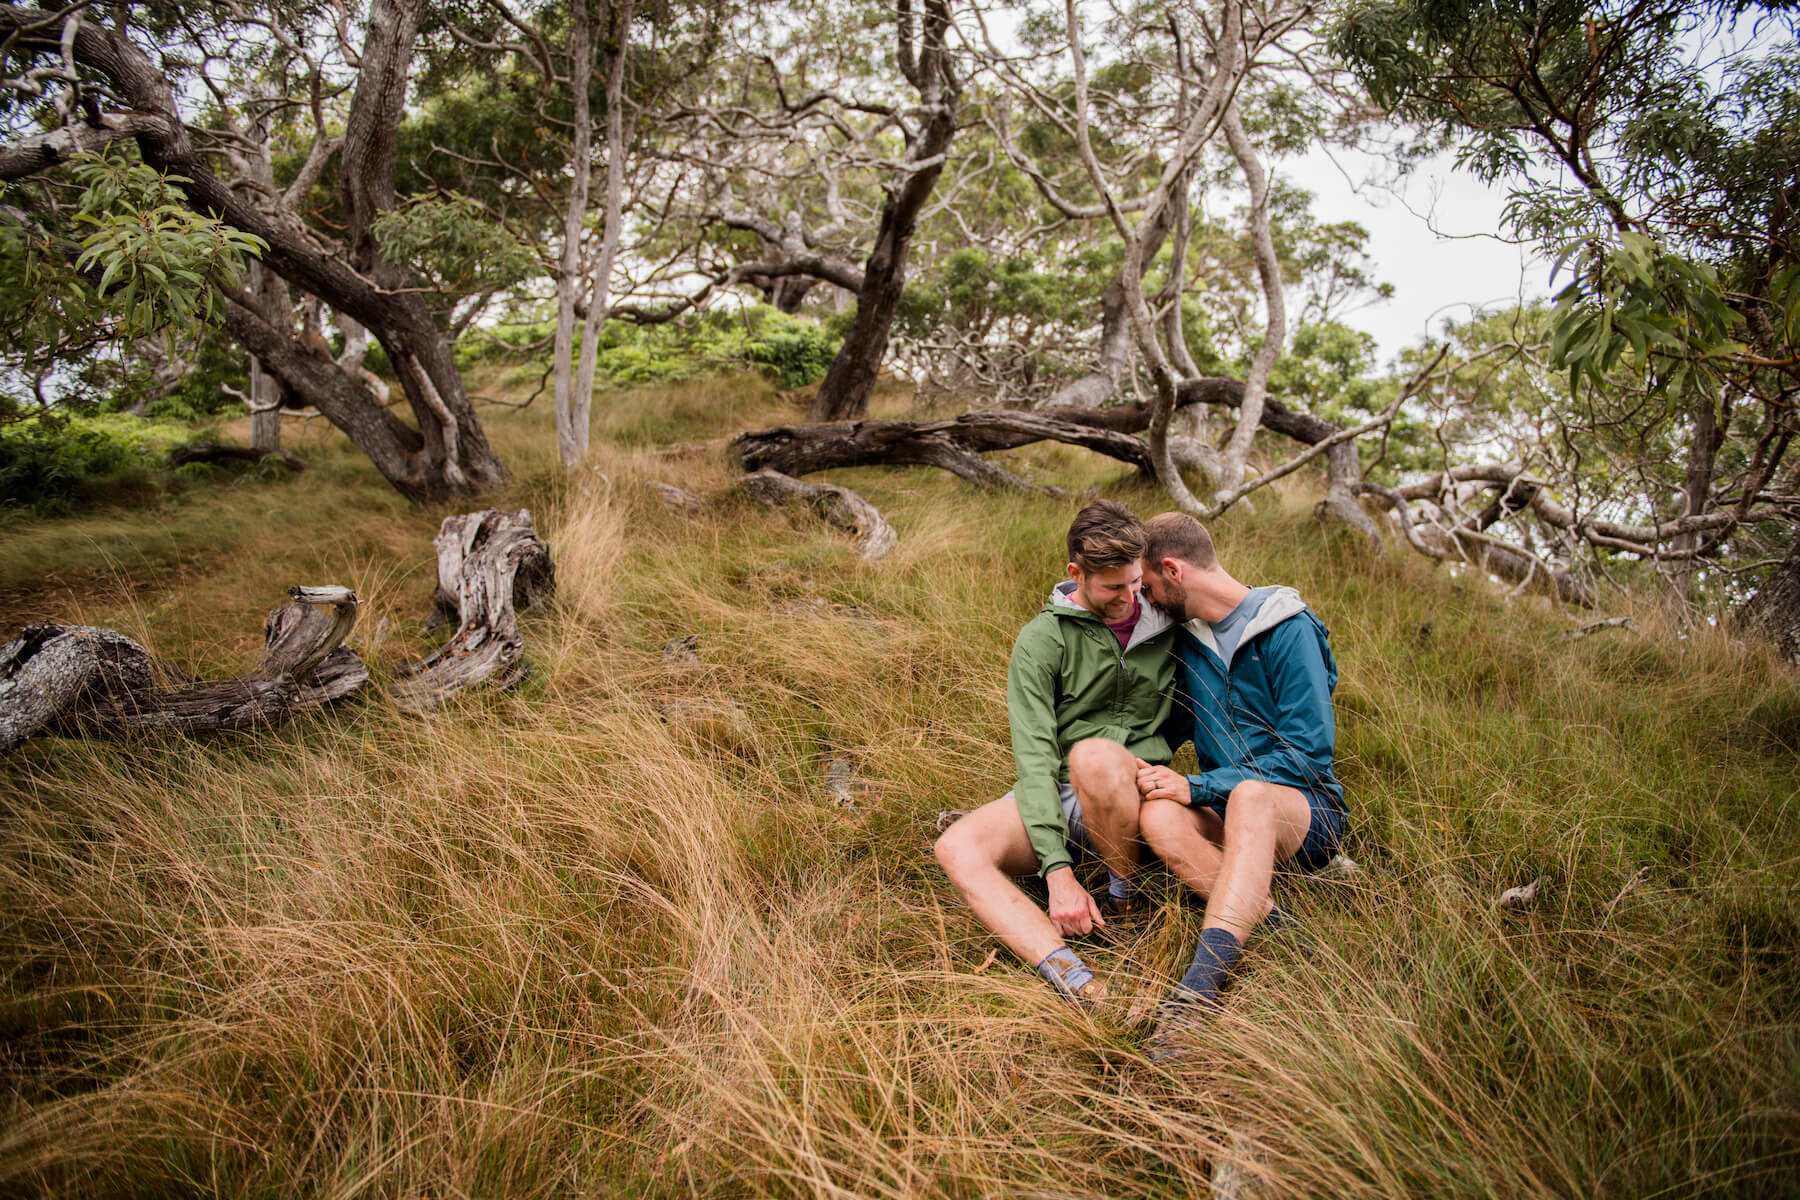 LGBTQ couple holding each other sitting down on a hiking trail in Kauai, Hawaii